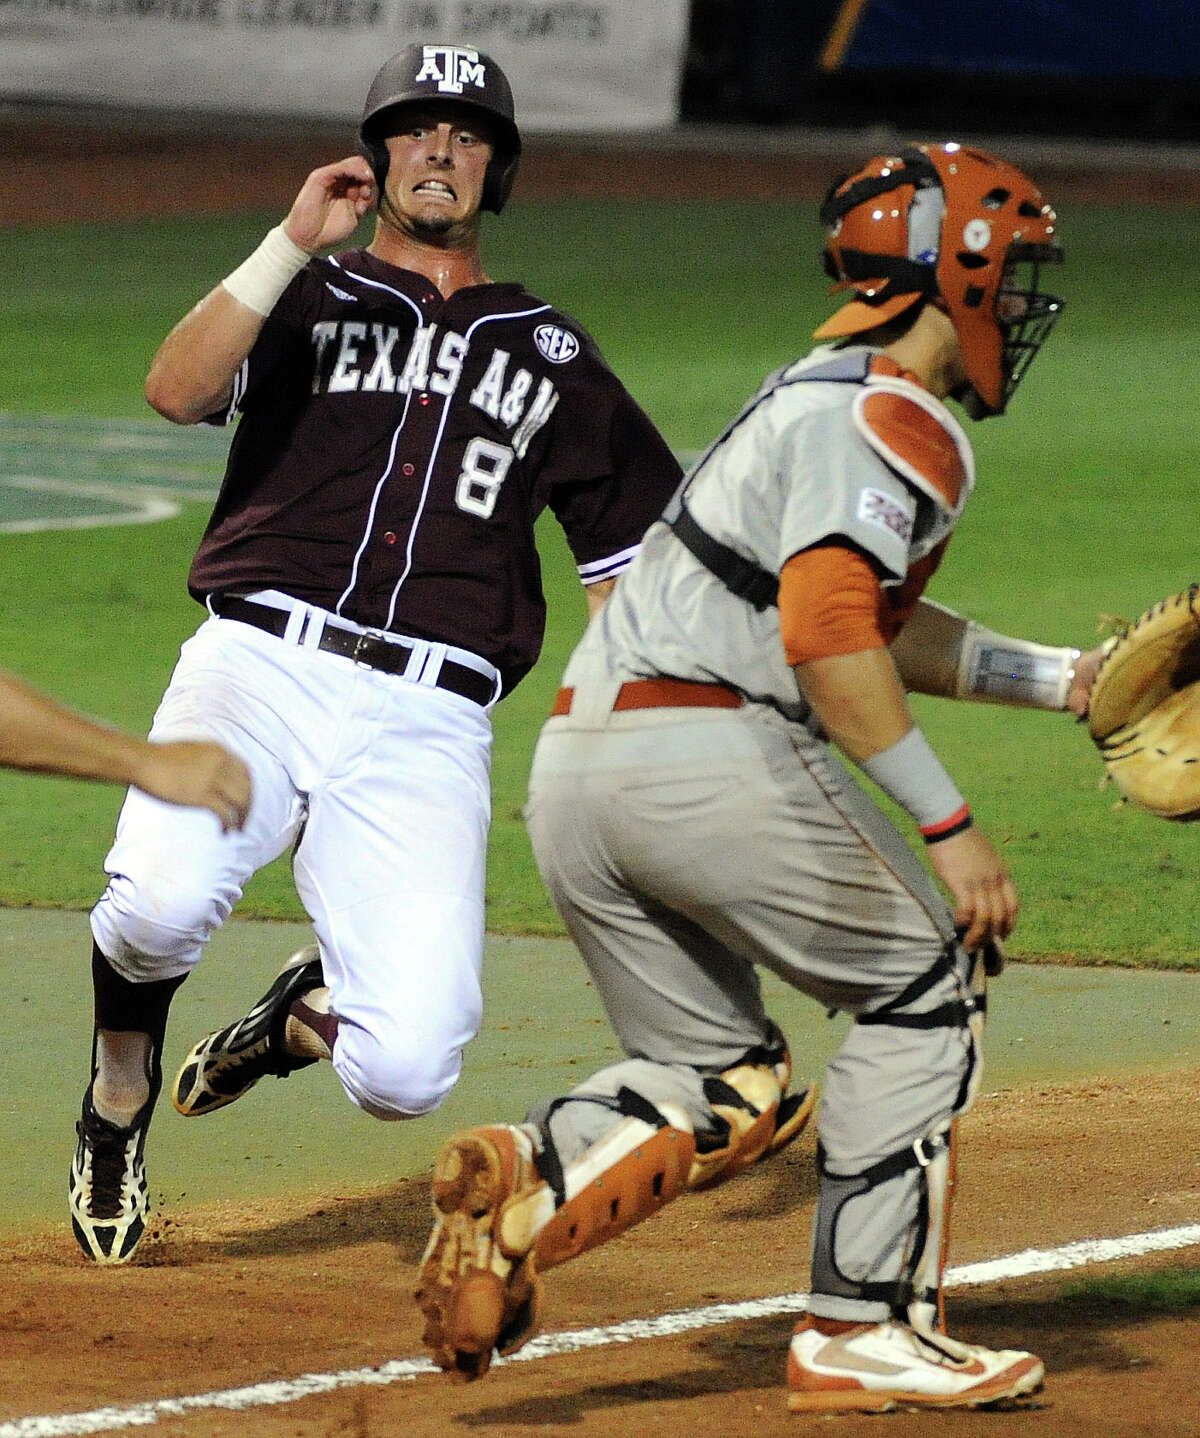 Texas A&M's Logan Nottebrook (8) slides safely past Texas catcher Tres Barrera to tie the game 1-1, during the second inning of an NCAA baseball regional game, Sunday, June 1, 2014, at Reckling Park in Houston. (AP Photo/Houston Chronicle, Eric Christian Smith)